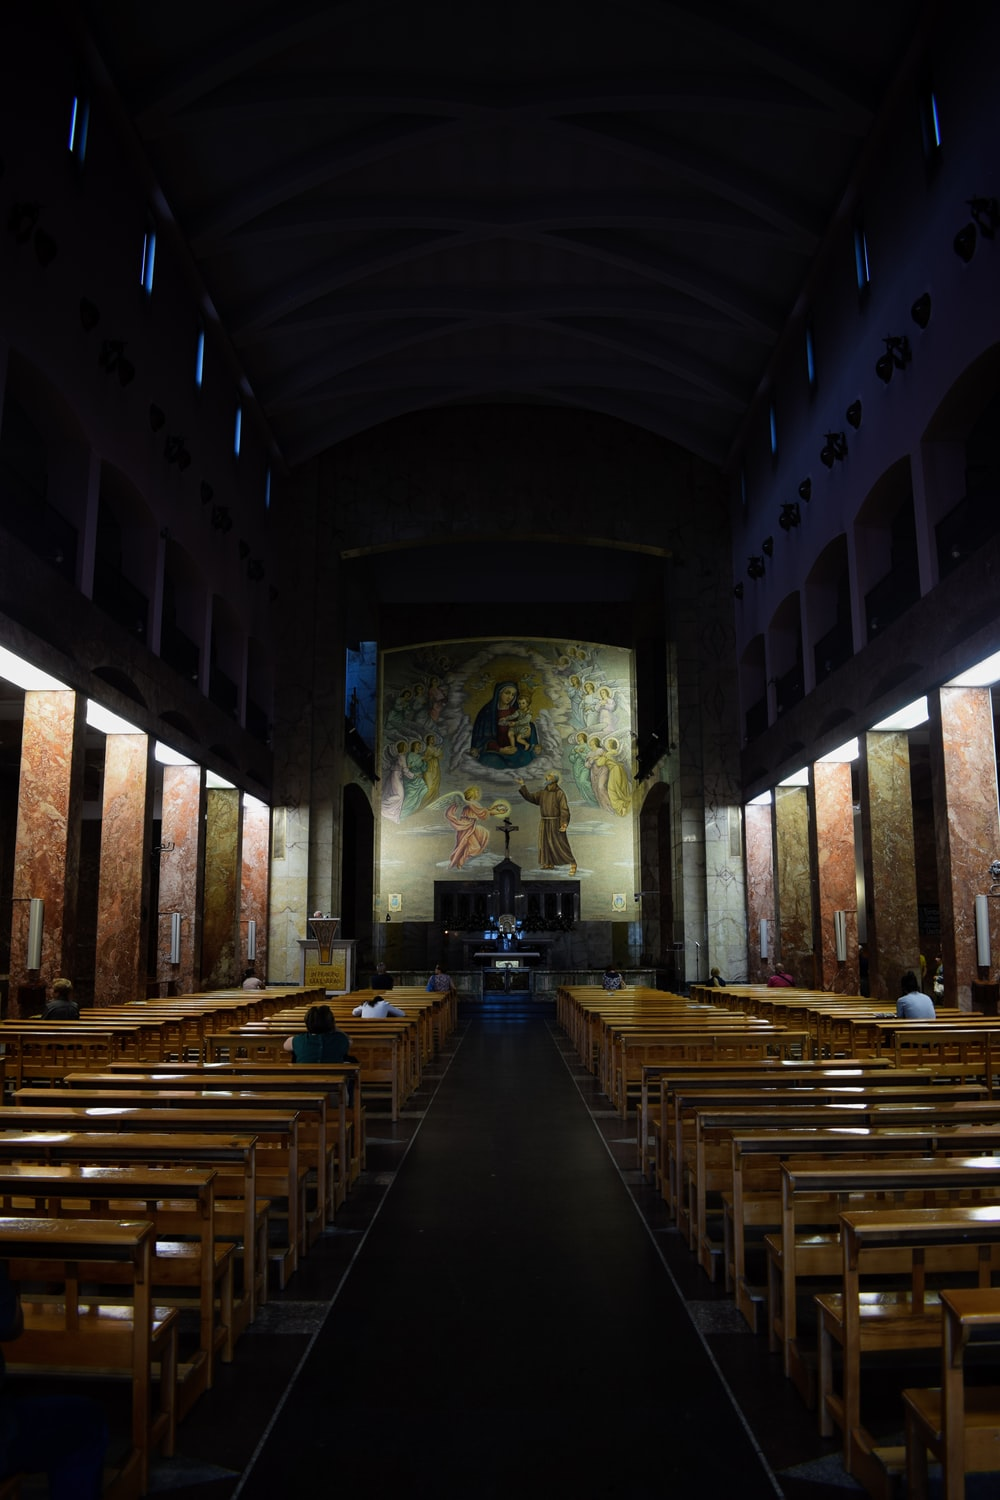 brown and gray cathedral interior